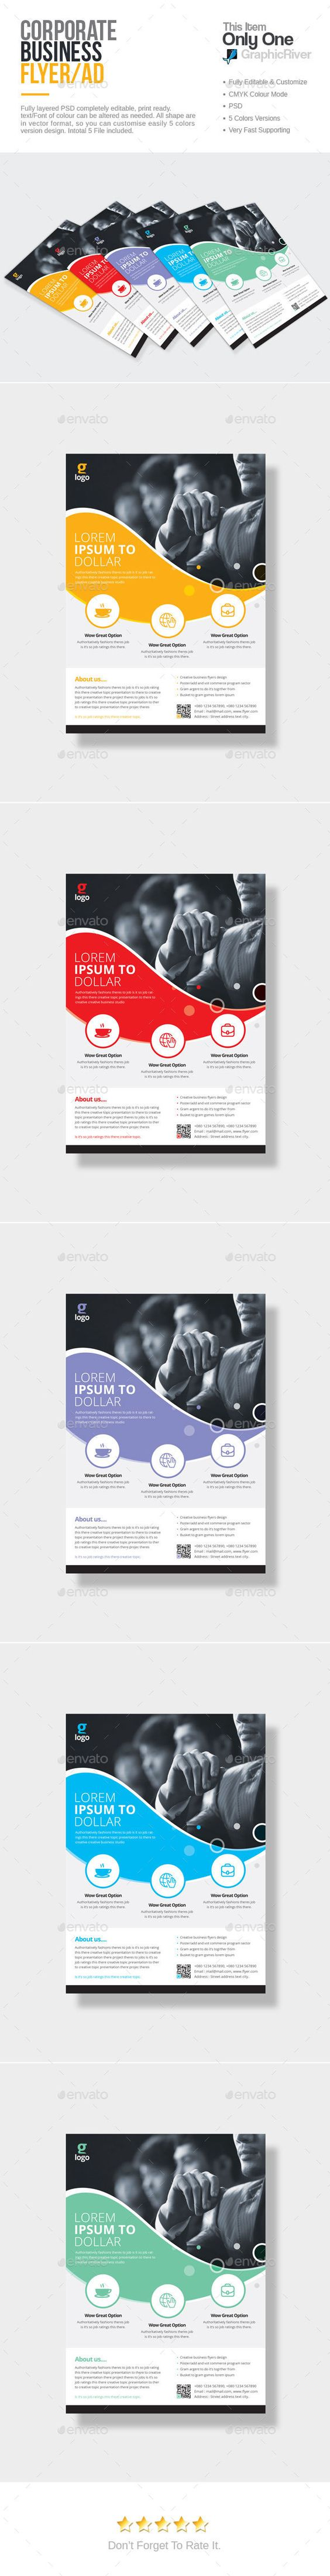 Corporate Flyer Template PSD. Download here: http://graphicriver.net/item/corporate-flyer/15223825?ref=ksioks